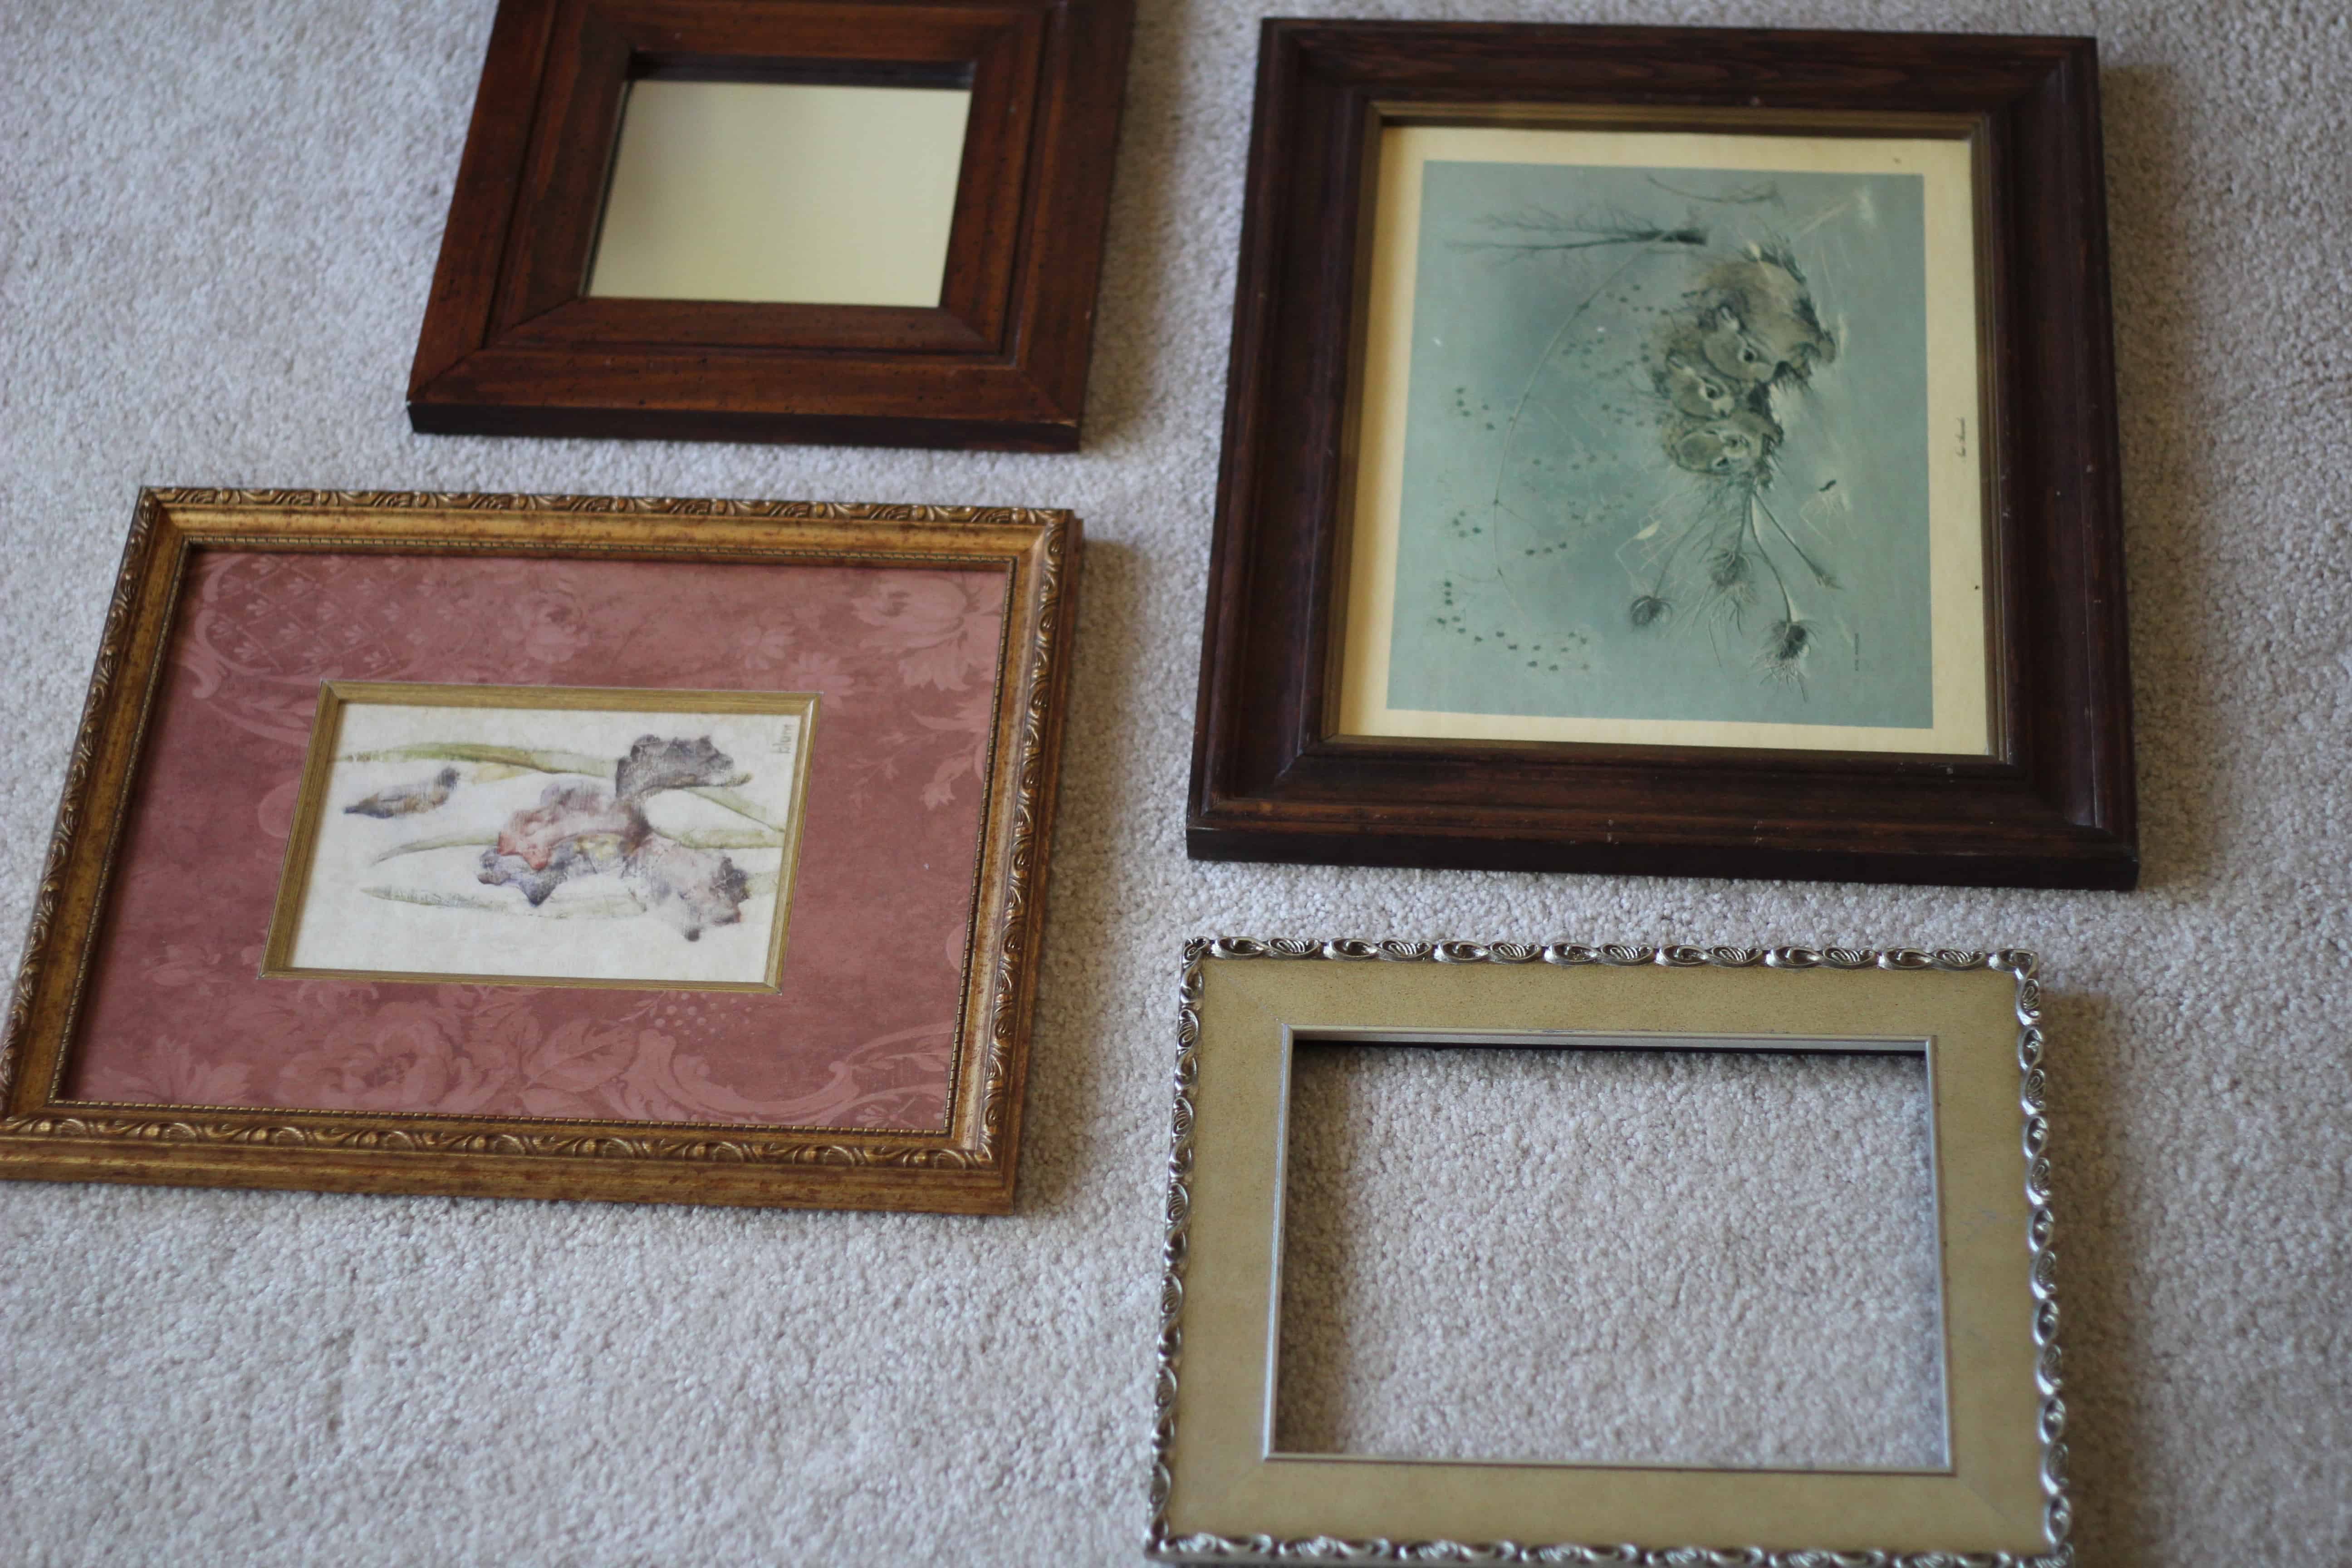 When you are decorating your home on a budget, it helps to get creative. Learn how I made this farmhouse gallery wall using thrifted picture frames and chalk paint. | bellewoodcottage.com